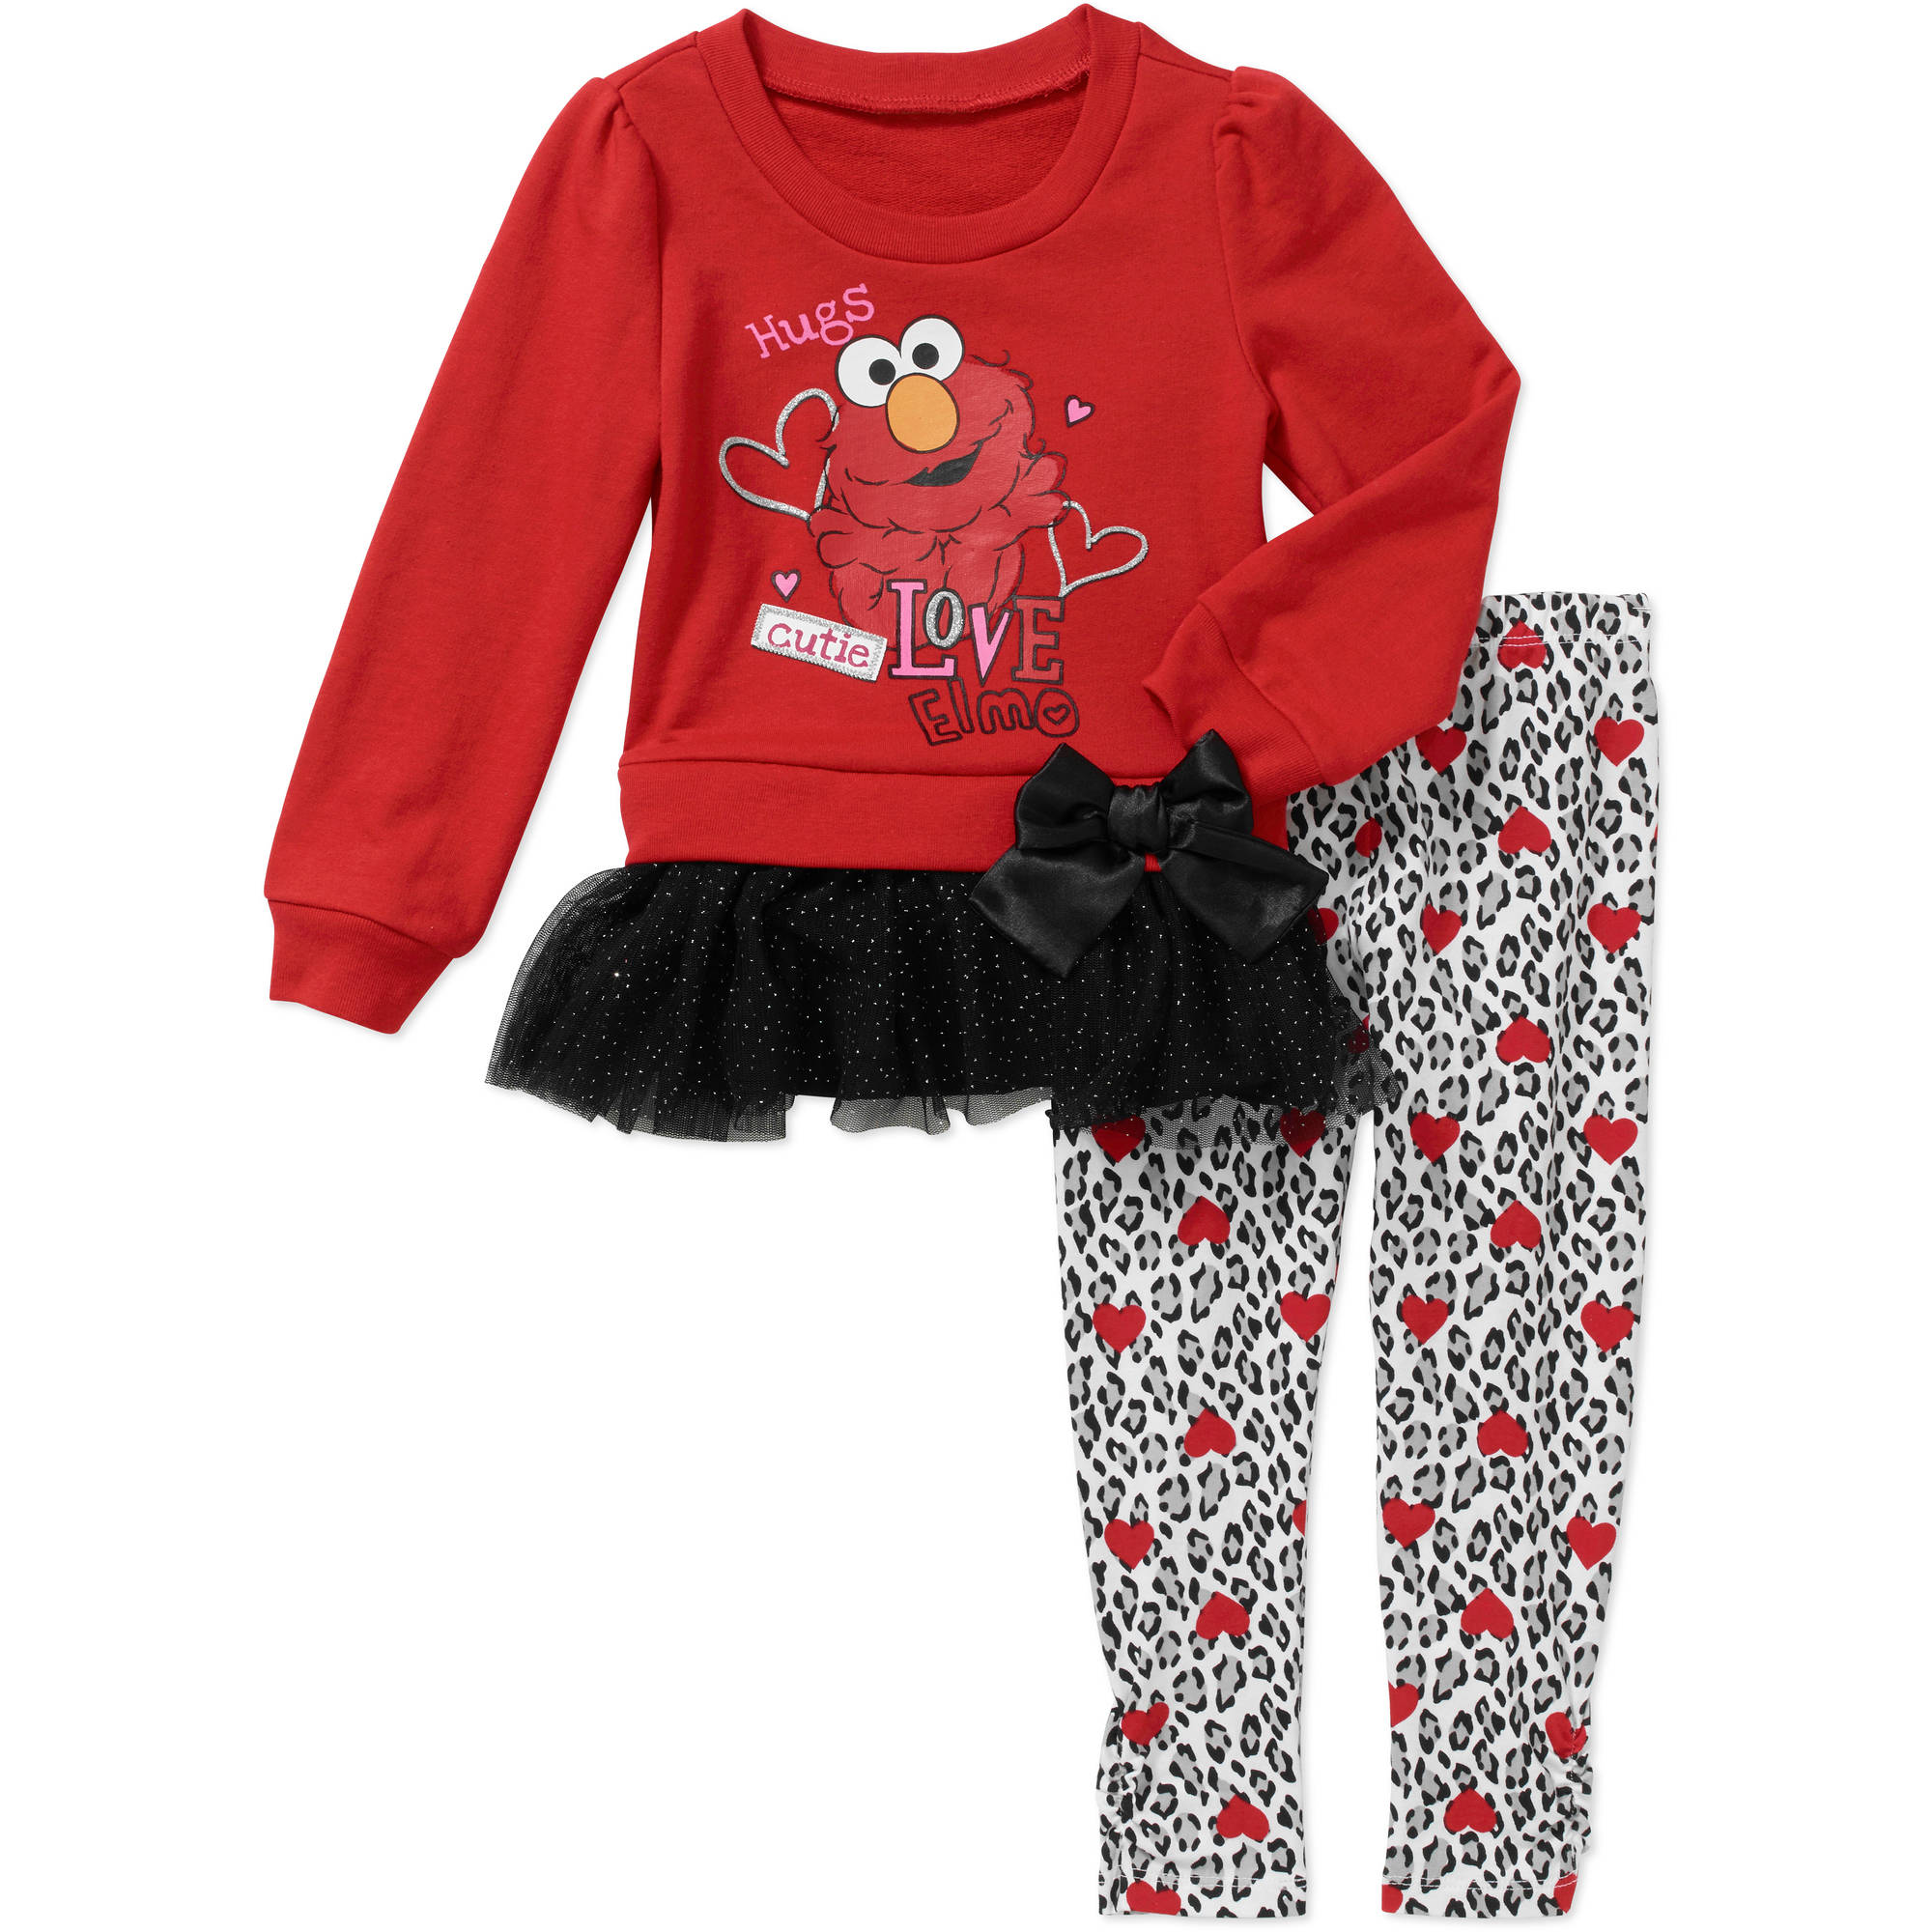 Elmo Baby Toddler Girls' Tunic and Leggings Outfit Set